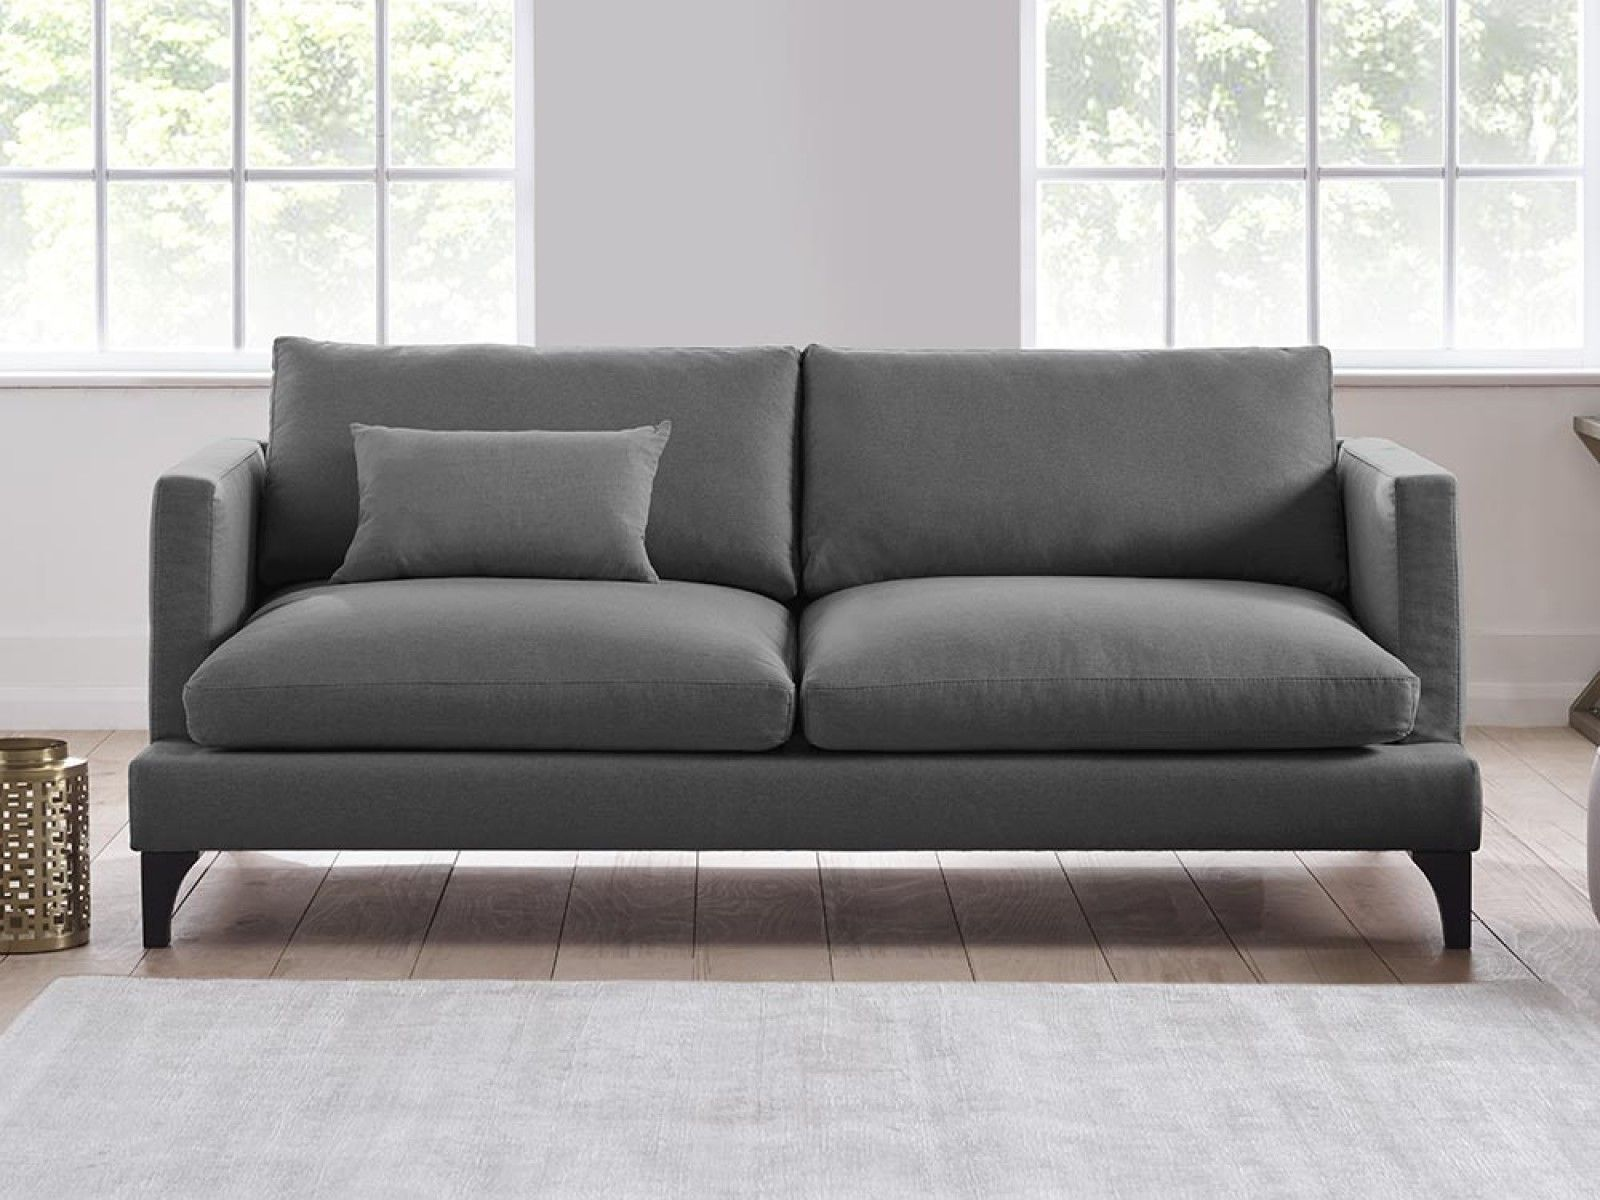 Theo Upholstered Sofa in Chatsworth Blue by